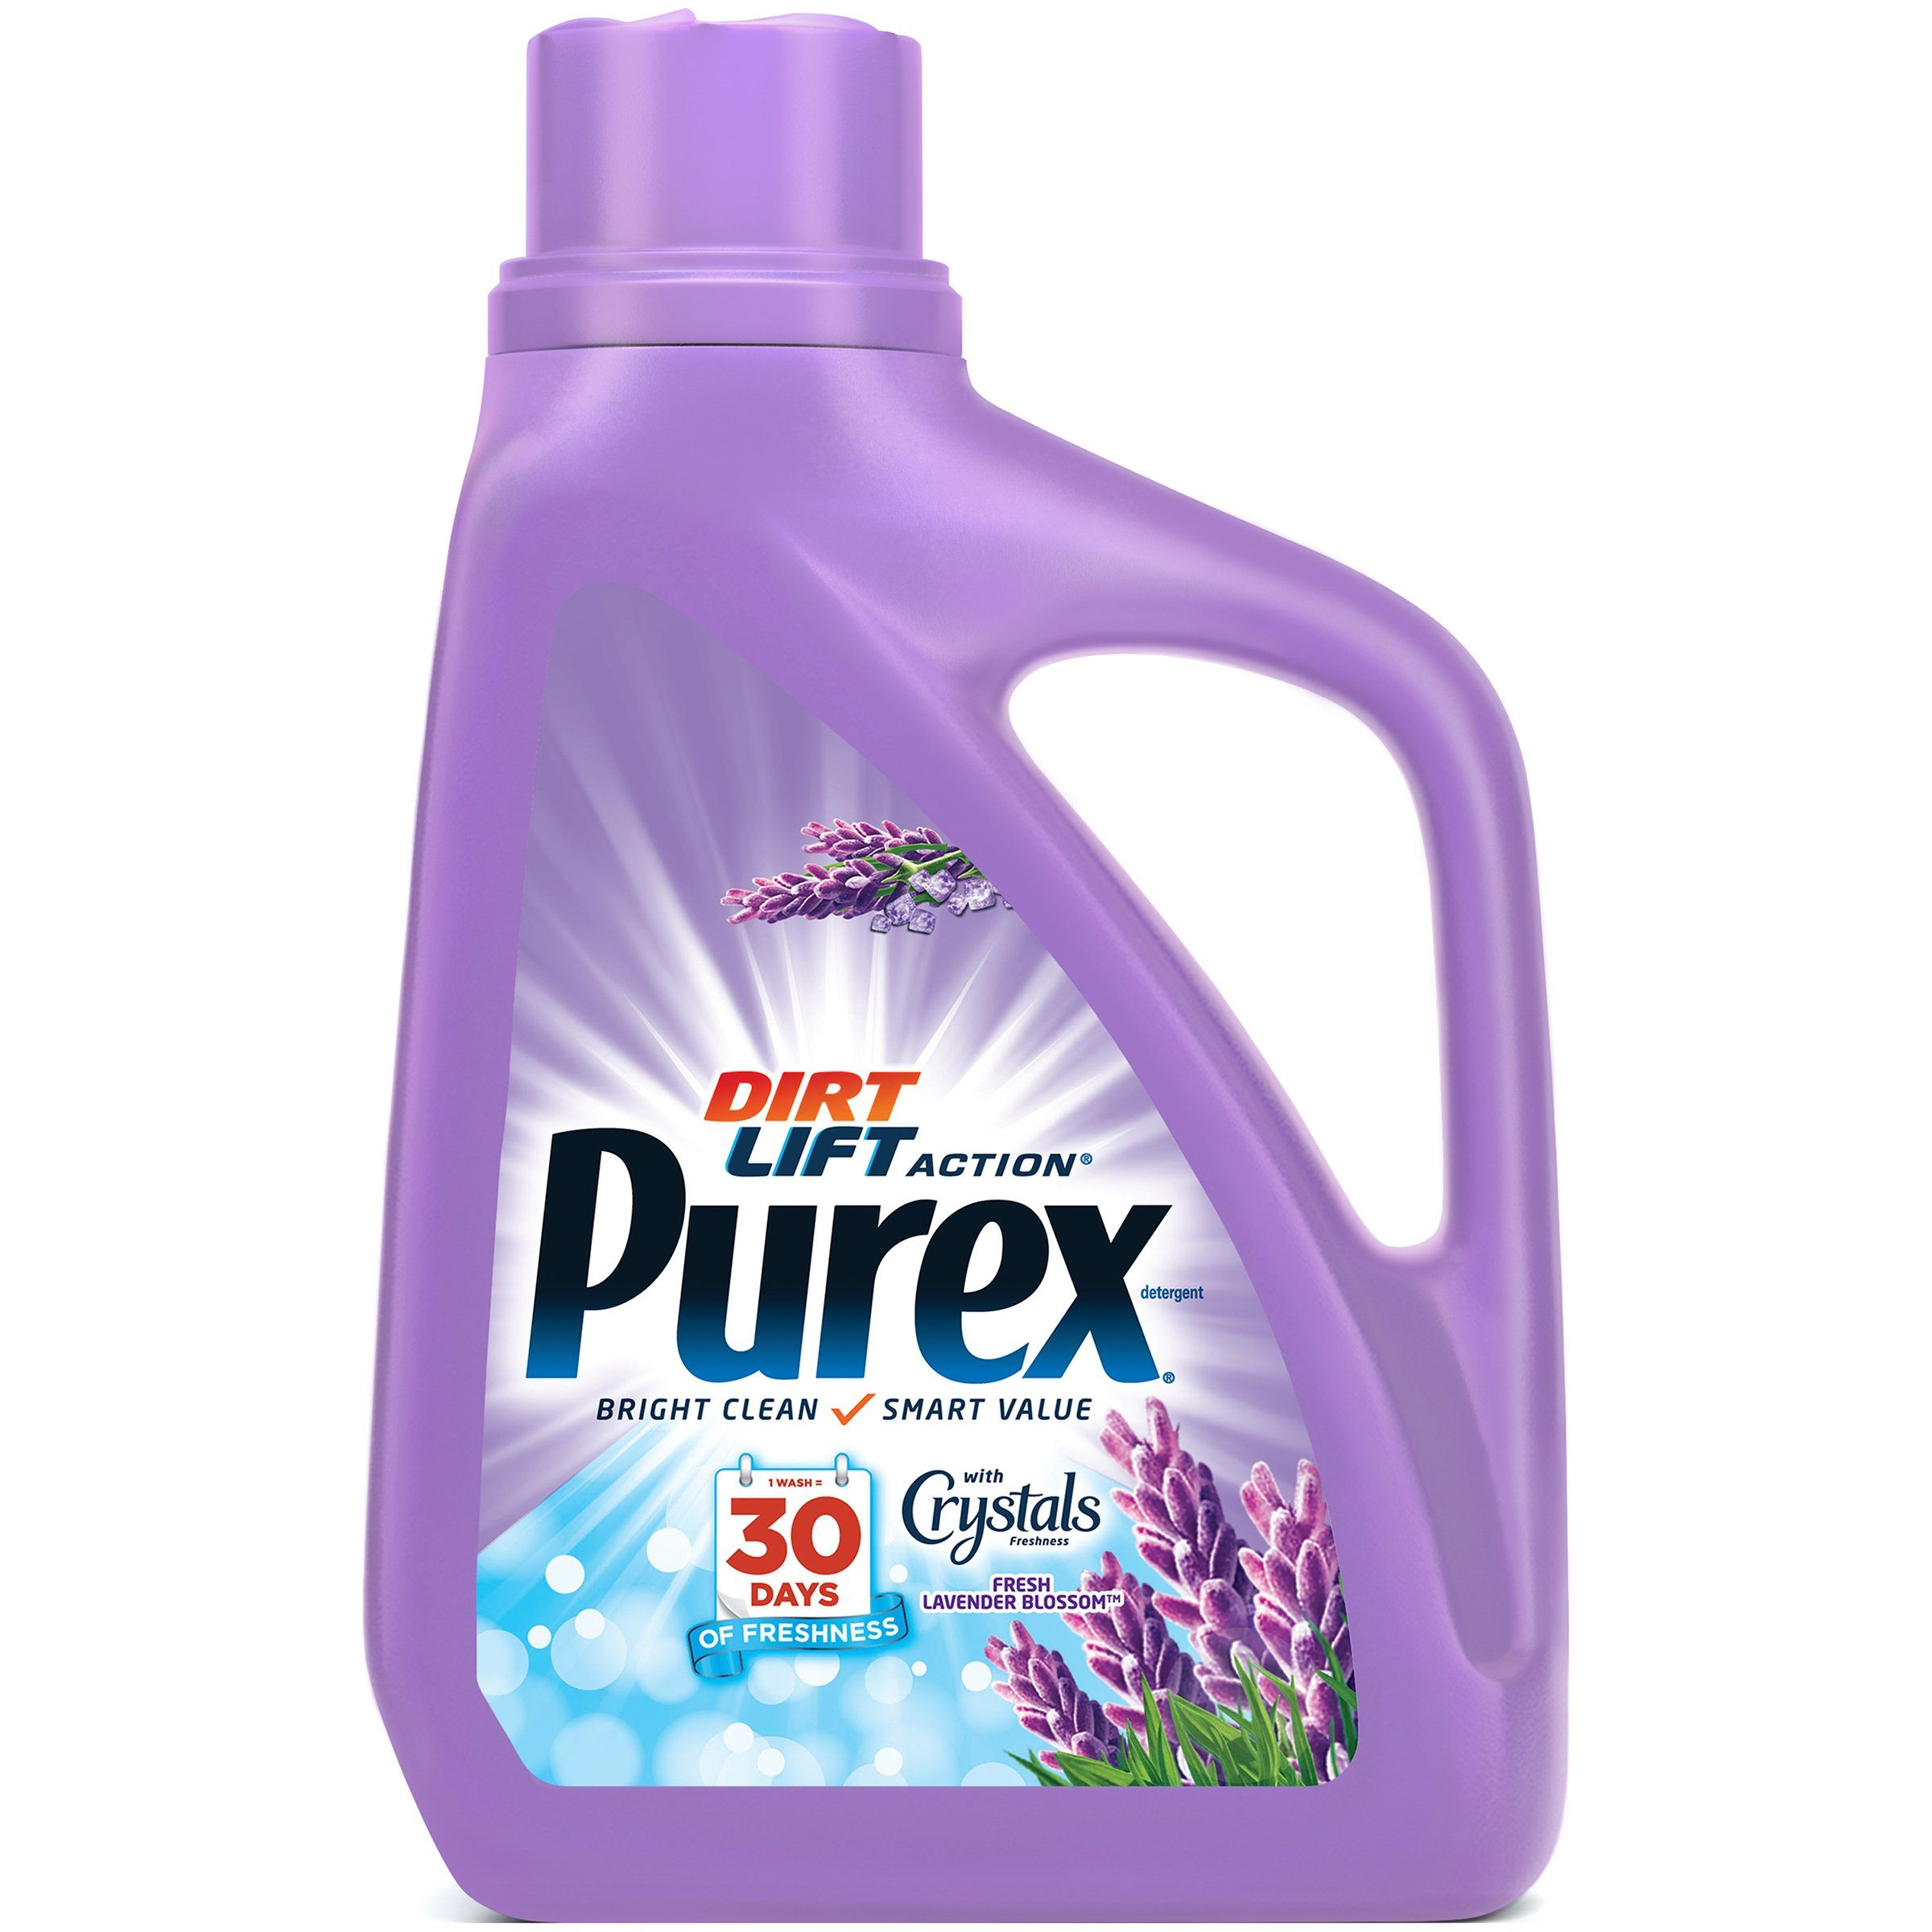 Purex Liquid Laundry Detergent With Crystals Fragrance Fresh